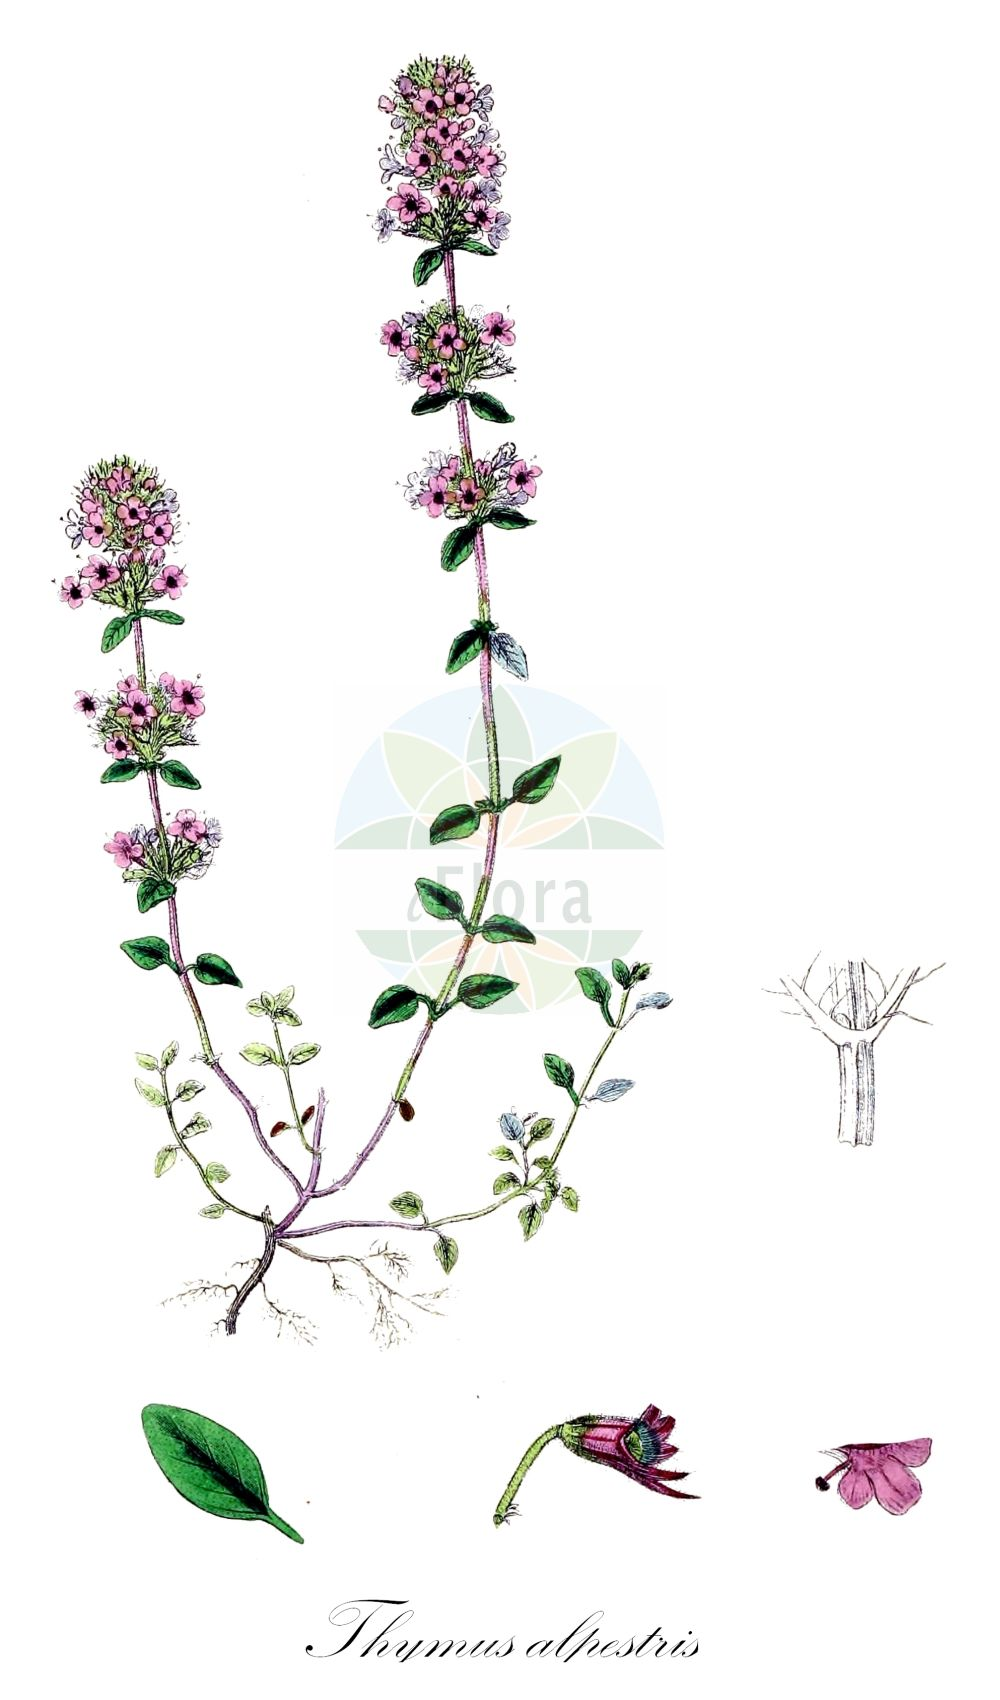 Historische Abbildung von Thymus alpestris (Hochgebirgs-Thymian - Wild Thyme). Das Bild zeigt Blatt, Bluete, Frucht und Same. ---- Historical Drawing of Thymus alpestris (Hochgebirgs-Thymian - Wild Thyme).The image is showing leaf, flower, fruit and seed.(Thymus alpestris,Hochgebirgs-Thymian,Wild Thyme,Thymus subalpestris,Alpine Thyme,Thymus,Thymian,Thyme,Lamiaceae,Lippenbluetengewaechse;Lippenbluetler,Nettle family,Blatt,Bluete,Frucht,Same,leaf,flower,fruit,seed,Sowerby (1790-1813))